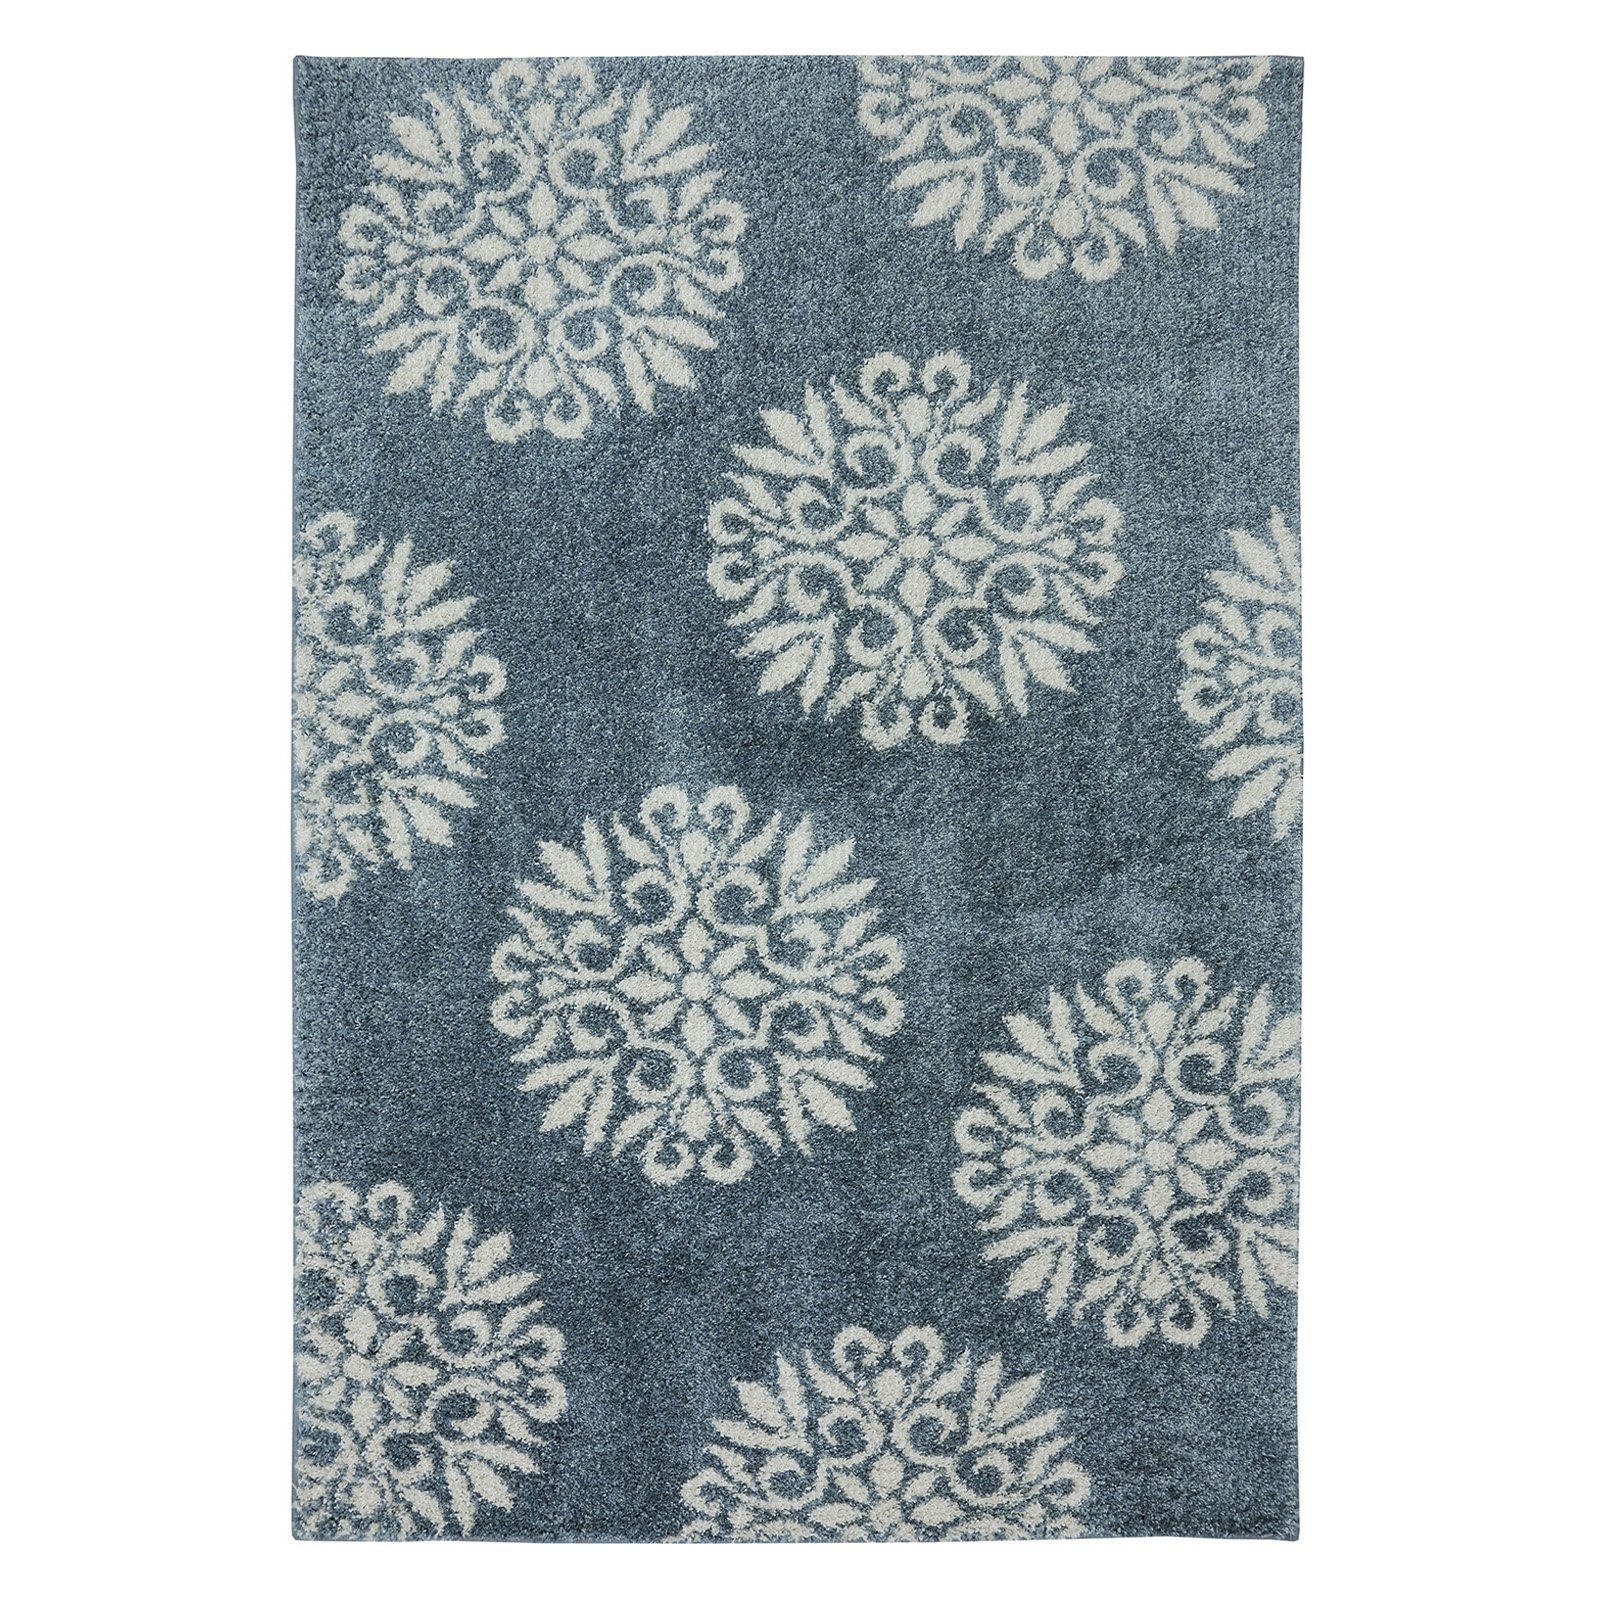 Mohawk Home Huxley Exploded Medallions Rug